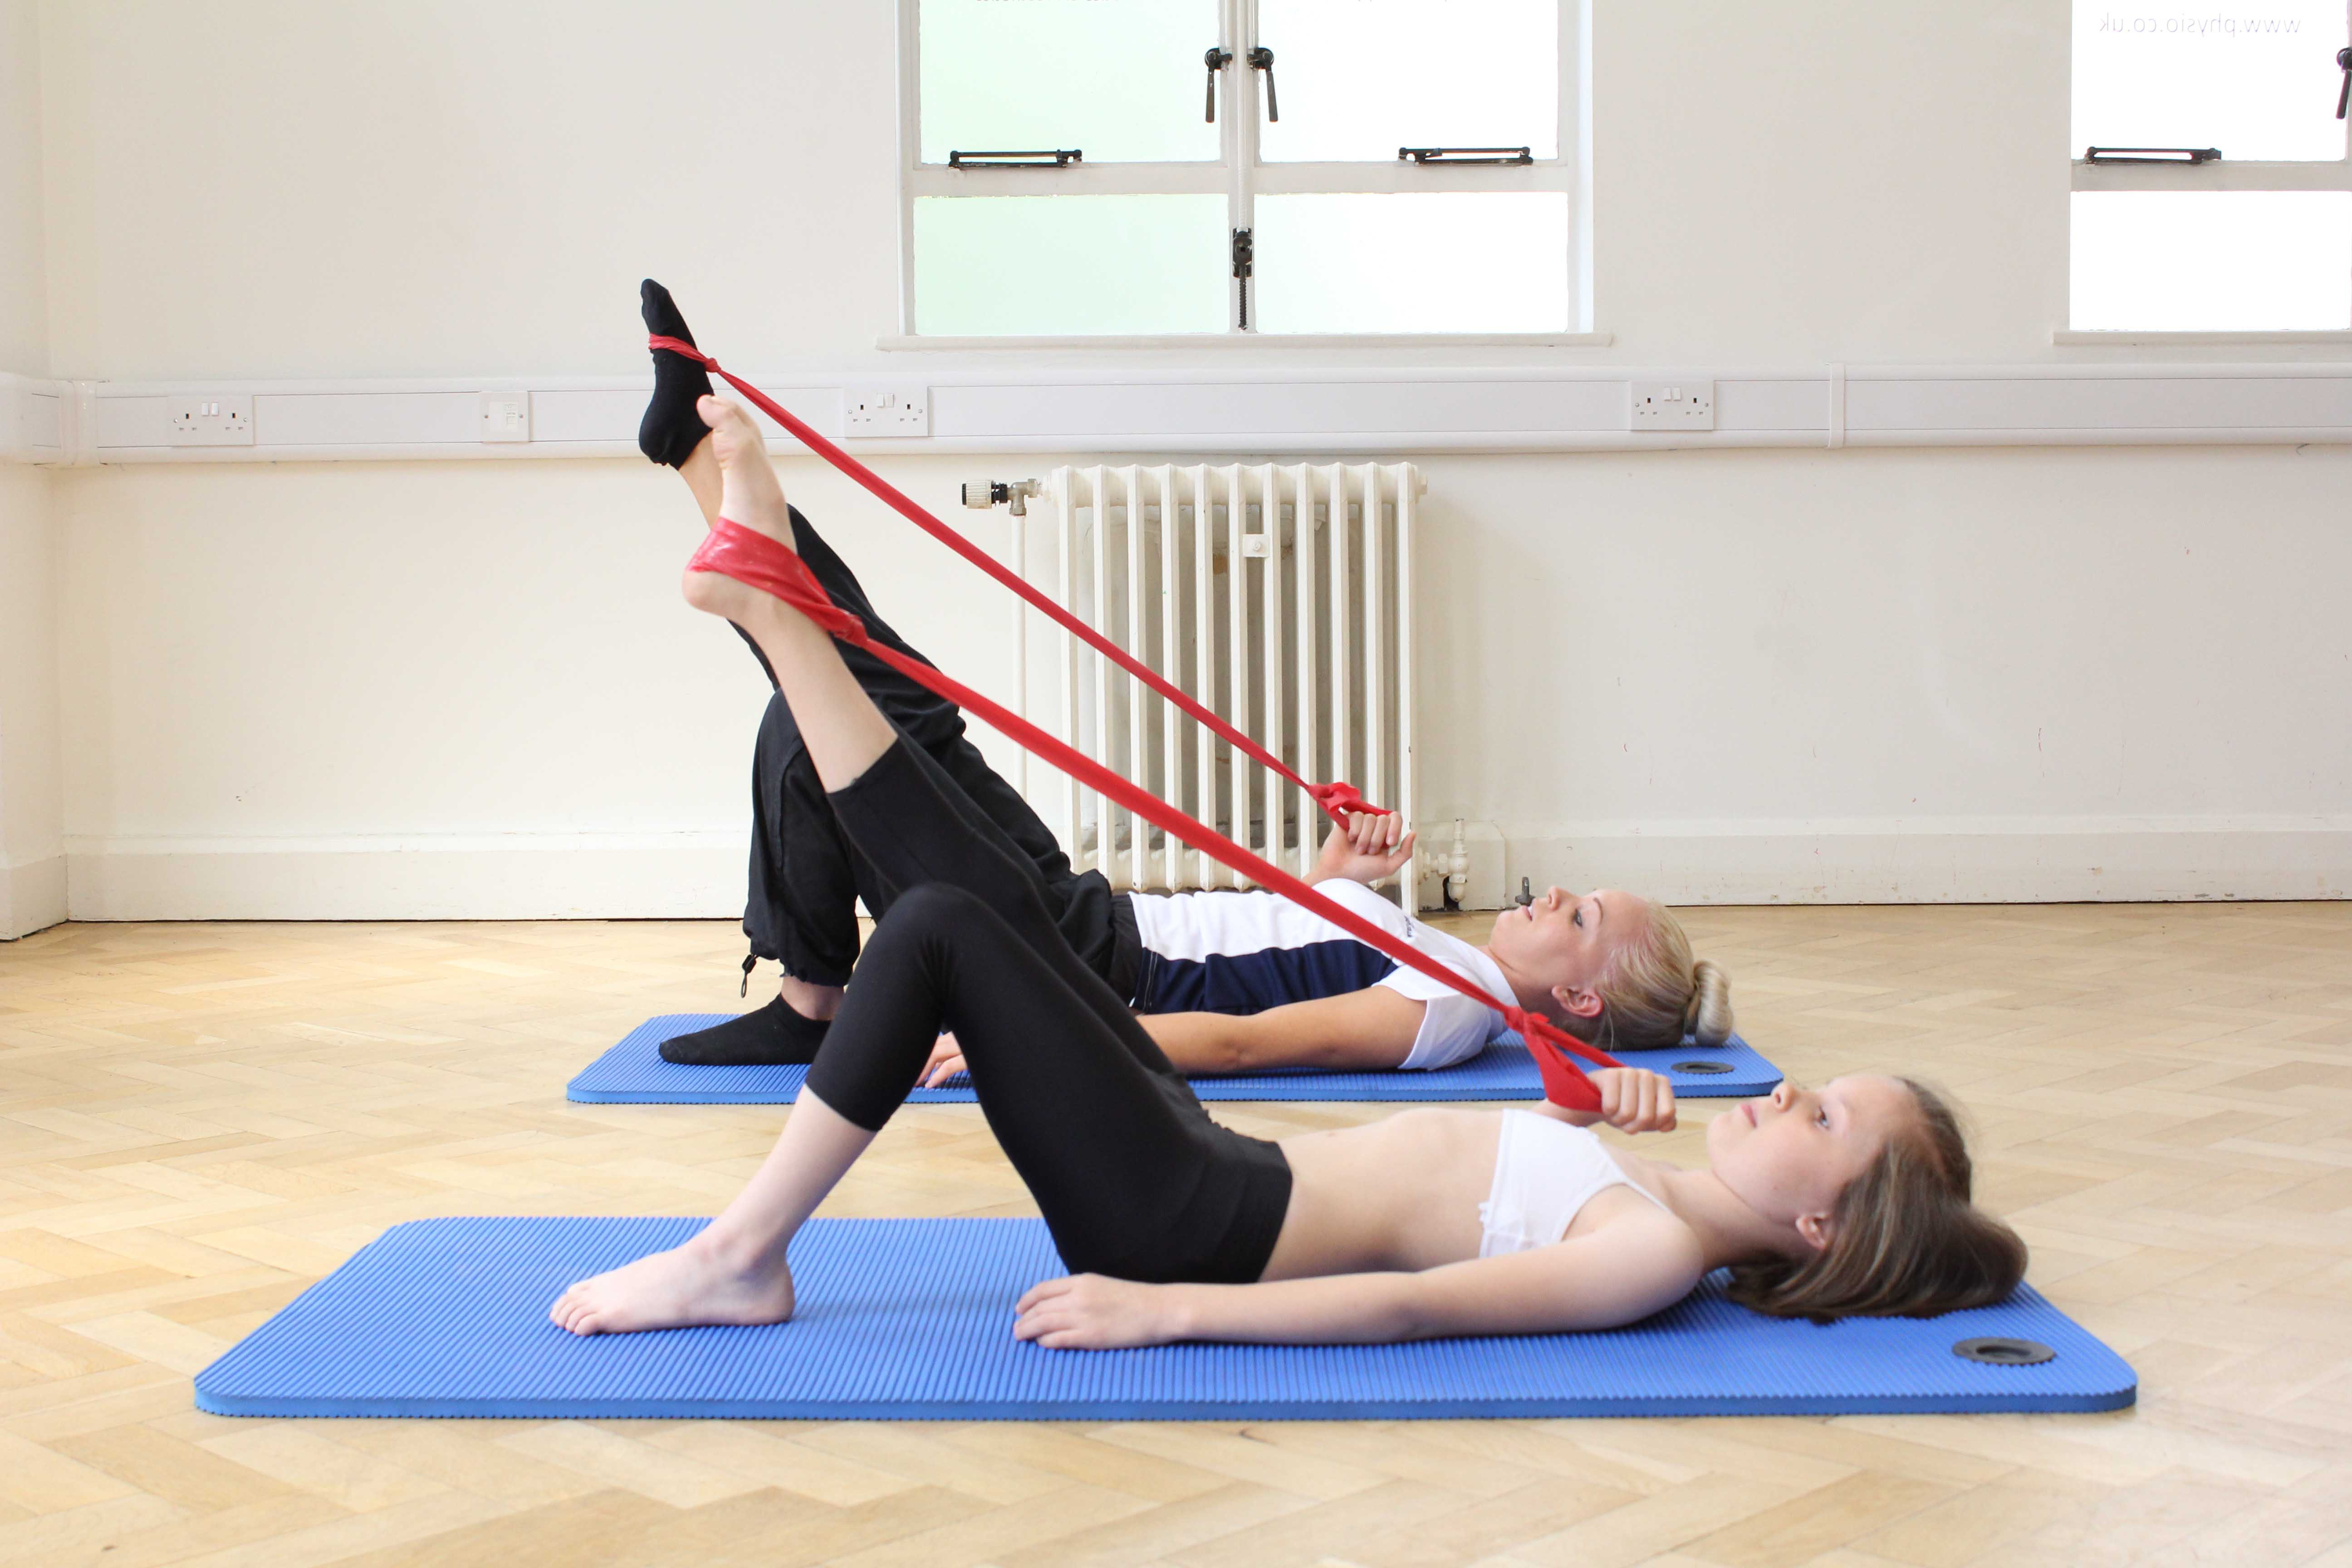 Toning and strengthening exercises for the leg using a resistance band